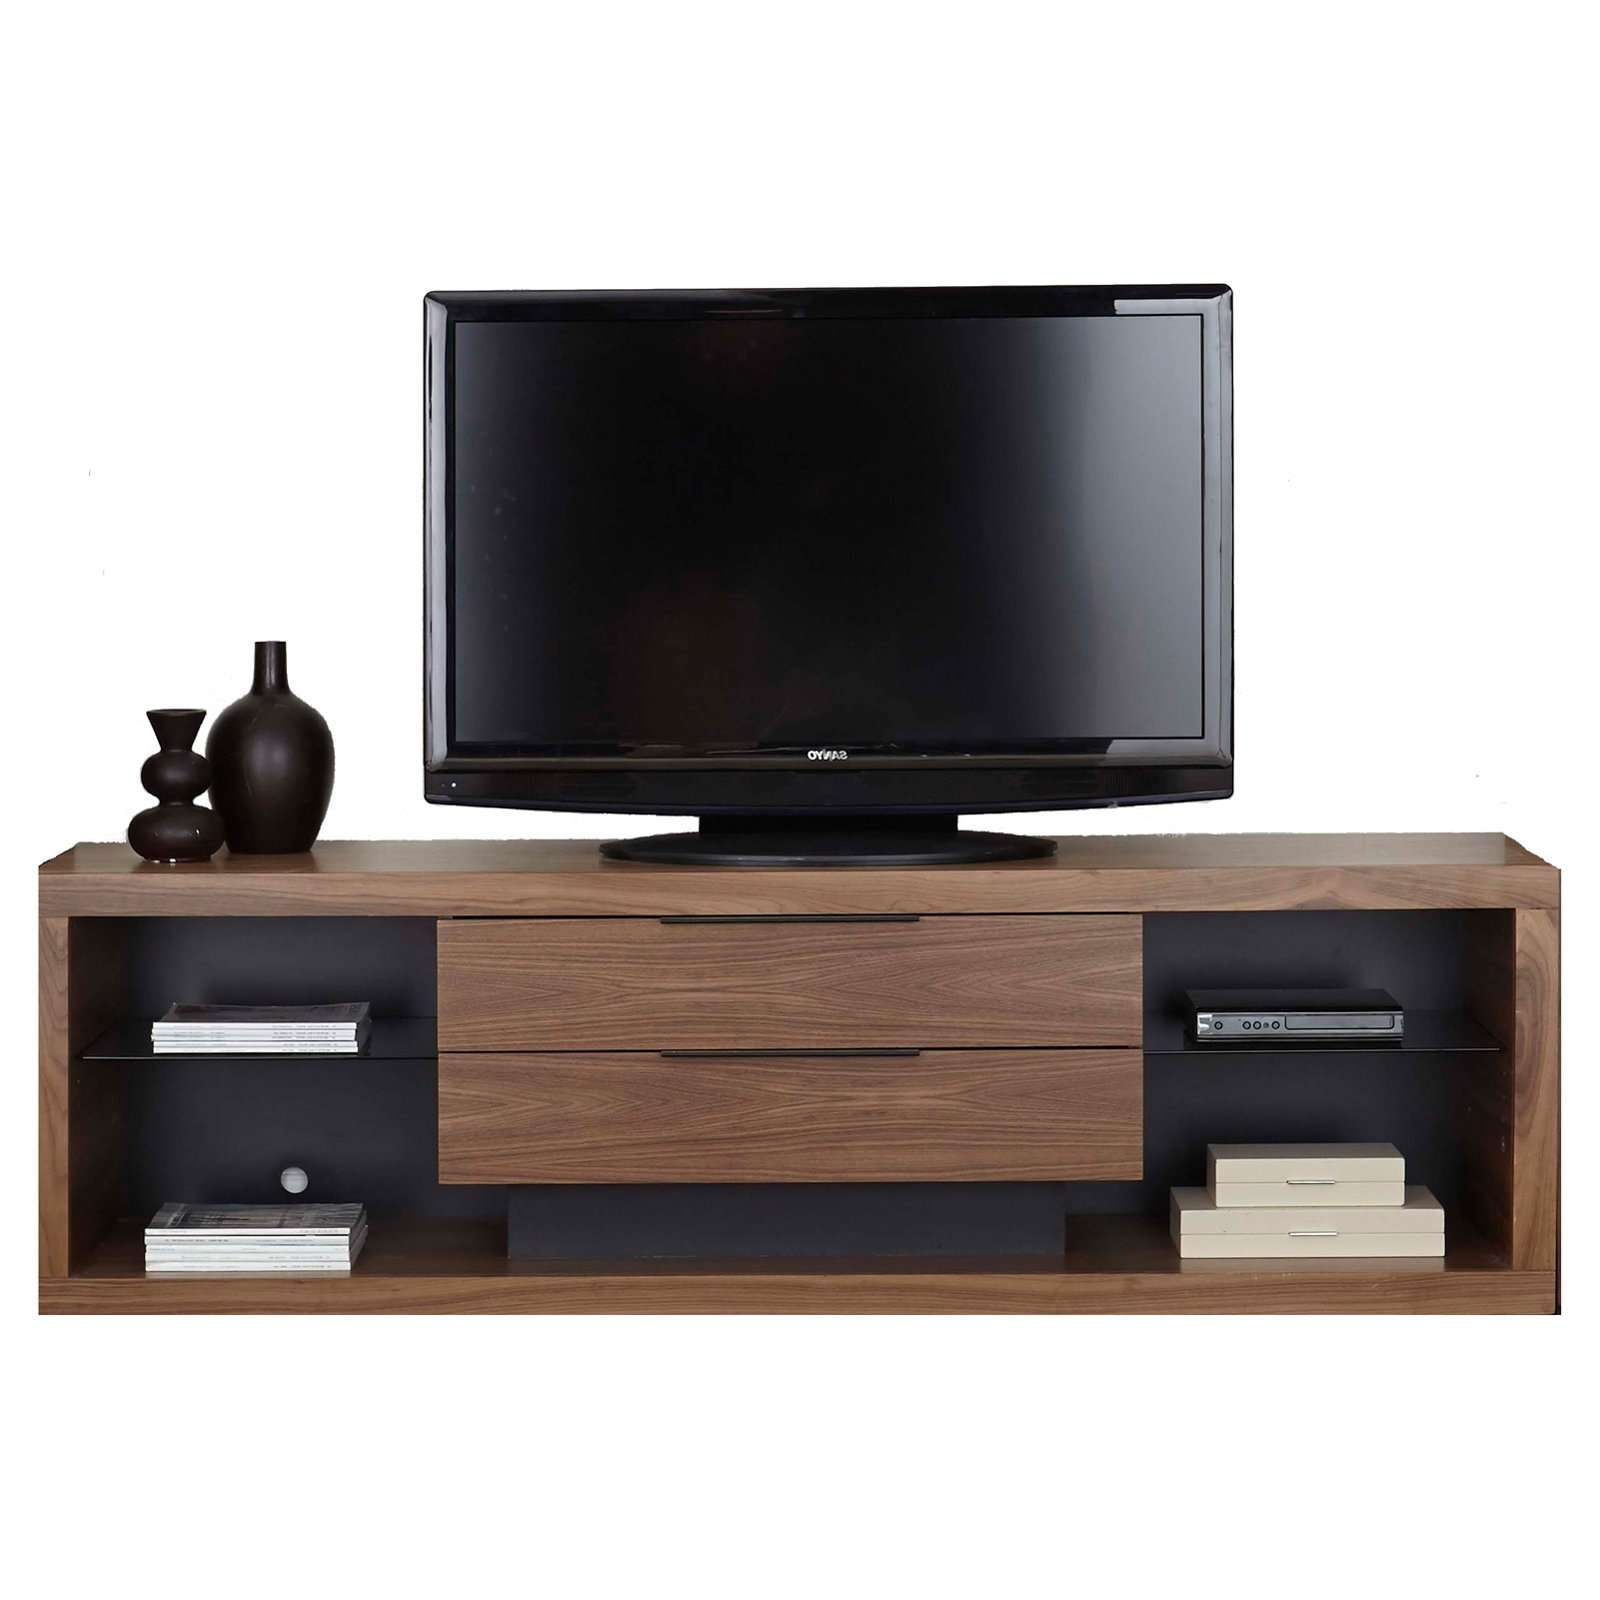 Tv Stand For 80 Inch Tv – Aiyorikane Inside 80 Inch Tv Stands (View 15 of 15)